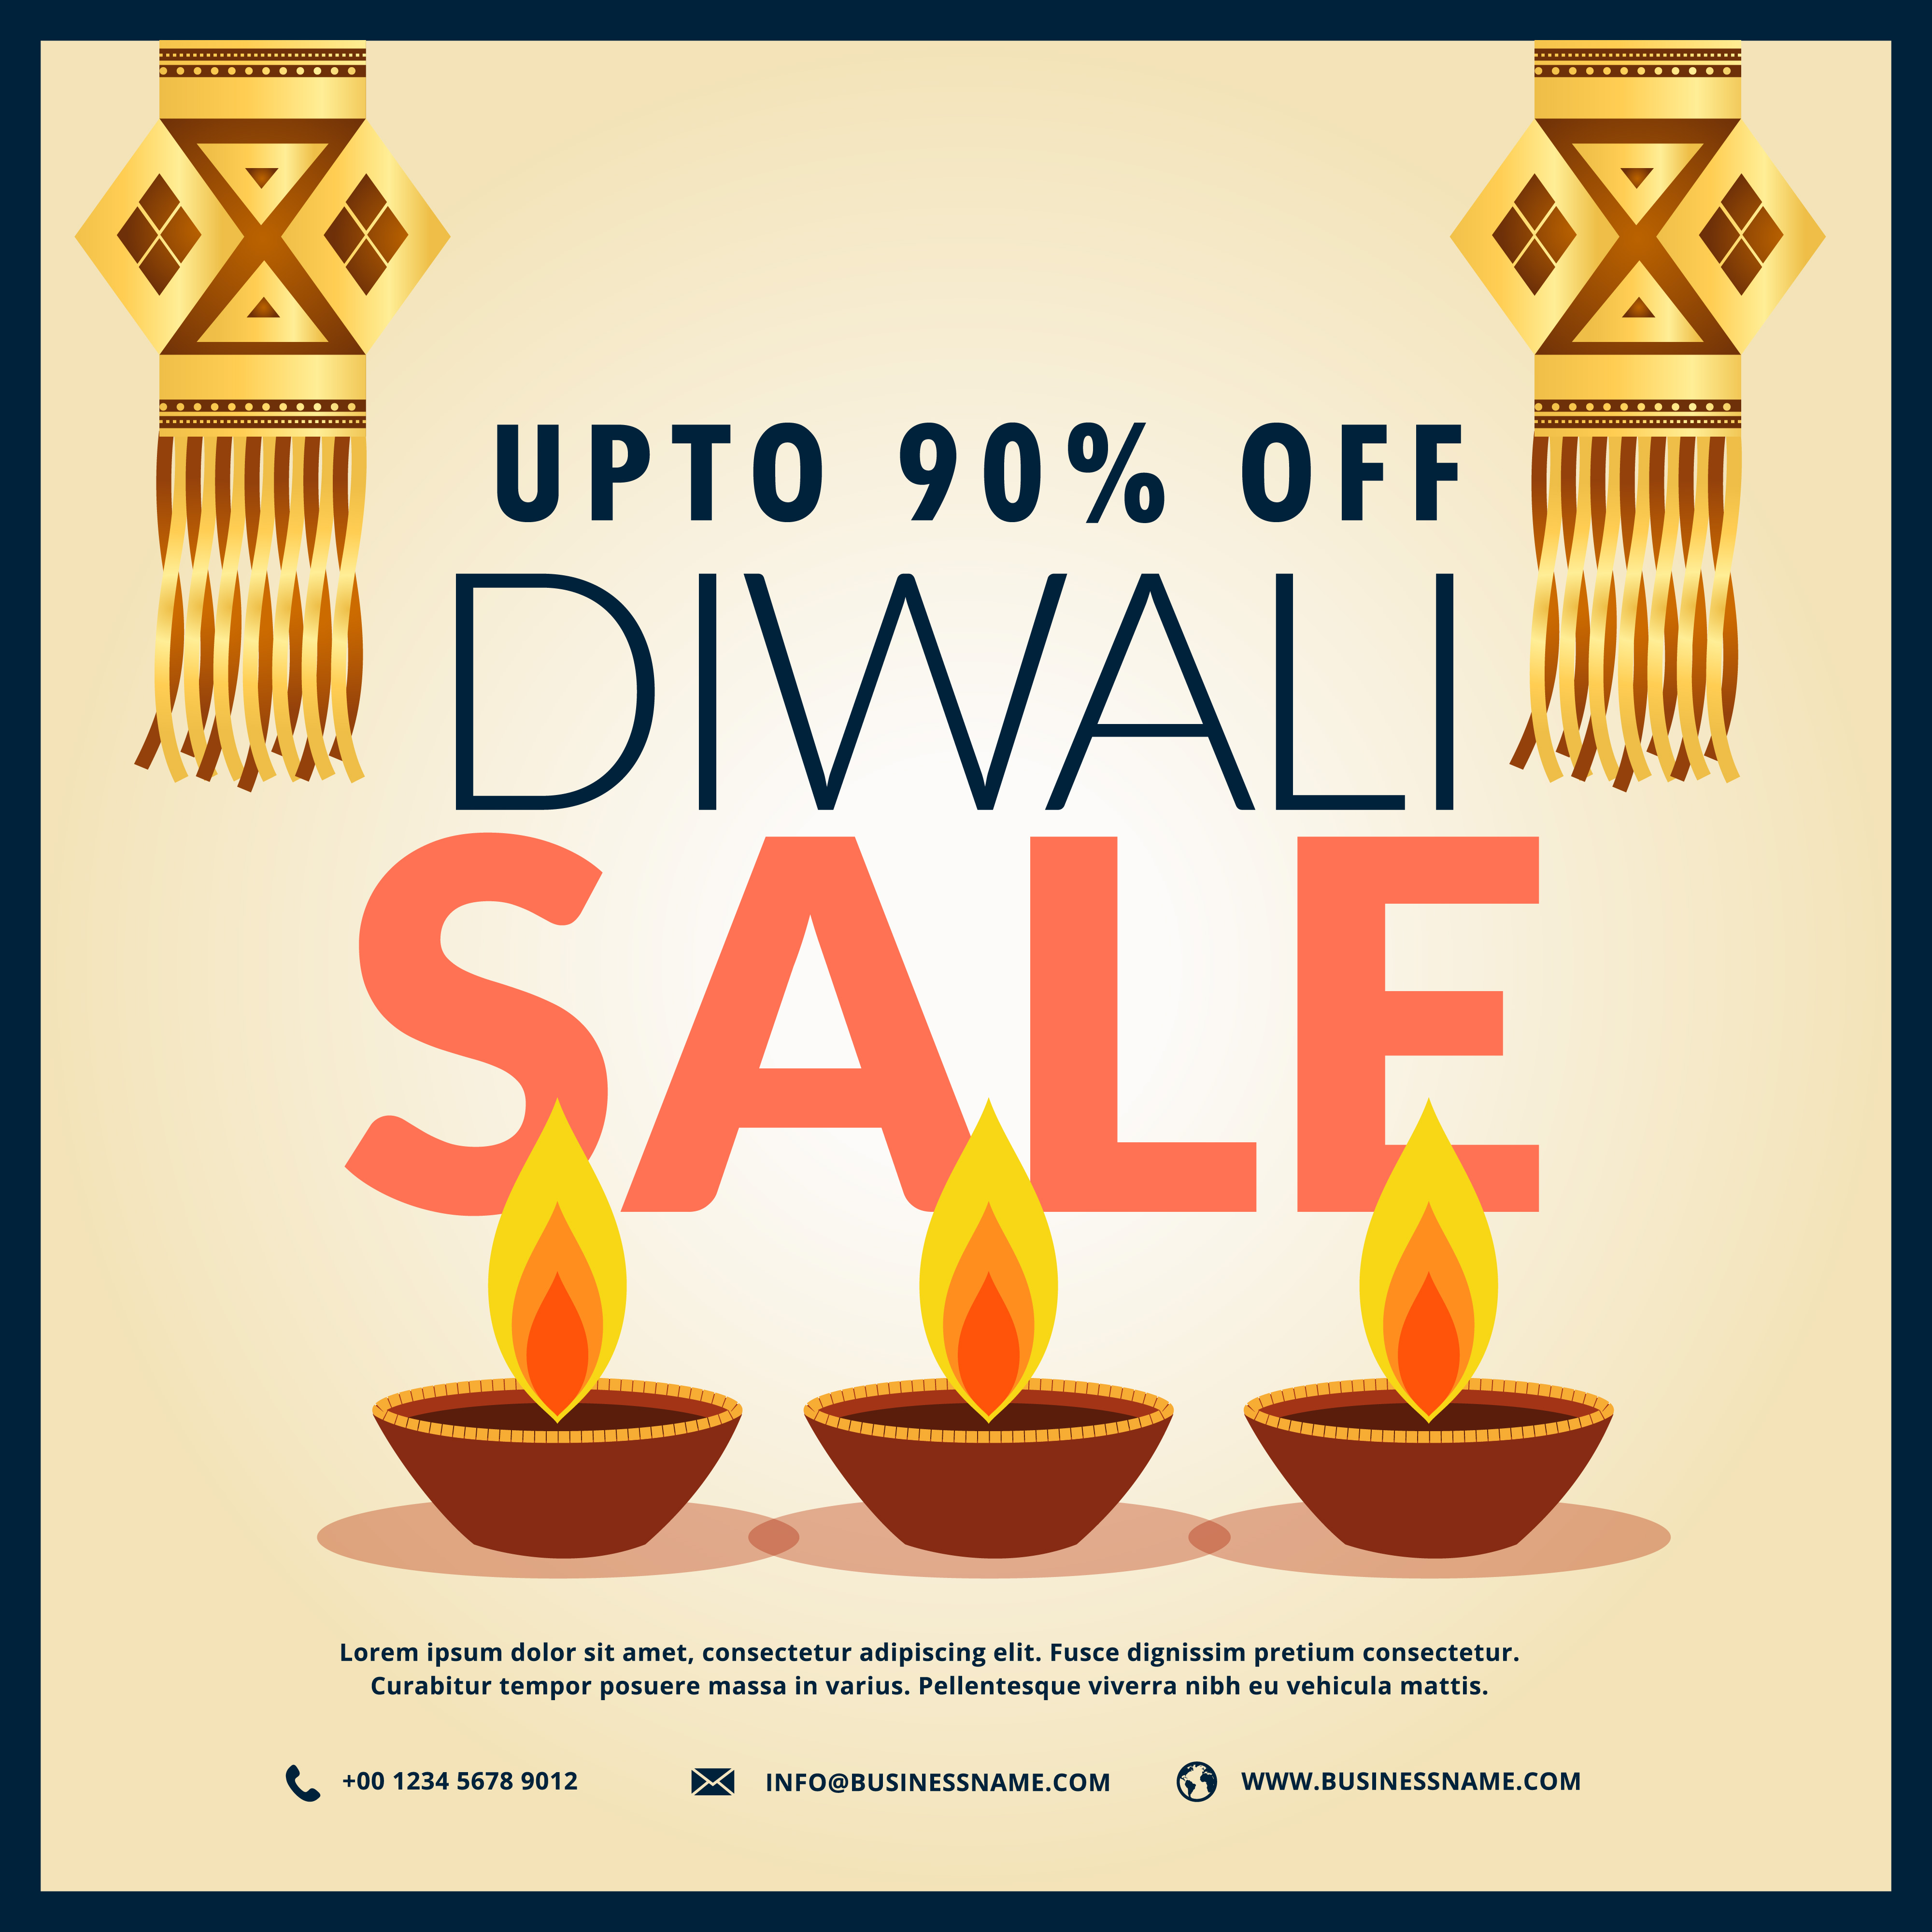 https://static.vecteezy.com/system/resources/thumbnails/000/189/634/original/diwali-sale-discount-banner-with-three-diya-and-hanging-lamps.jpg